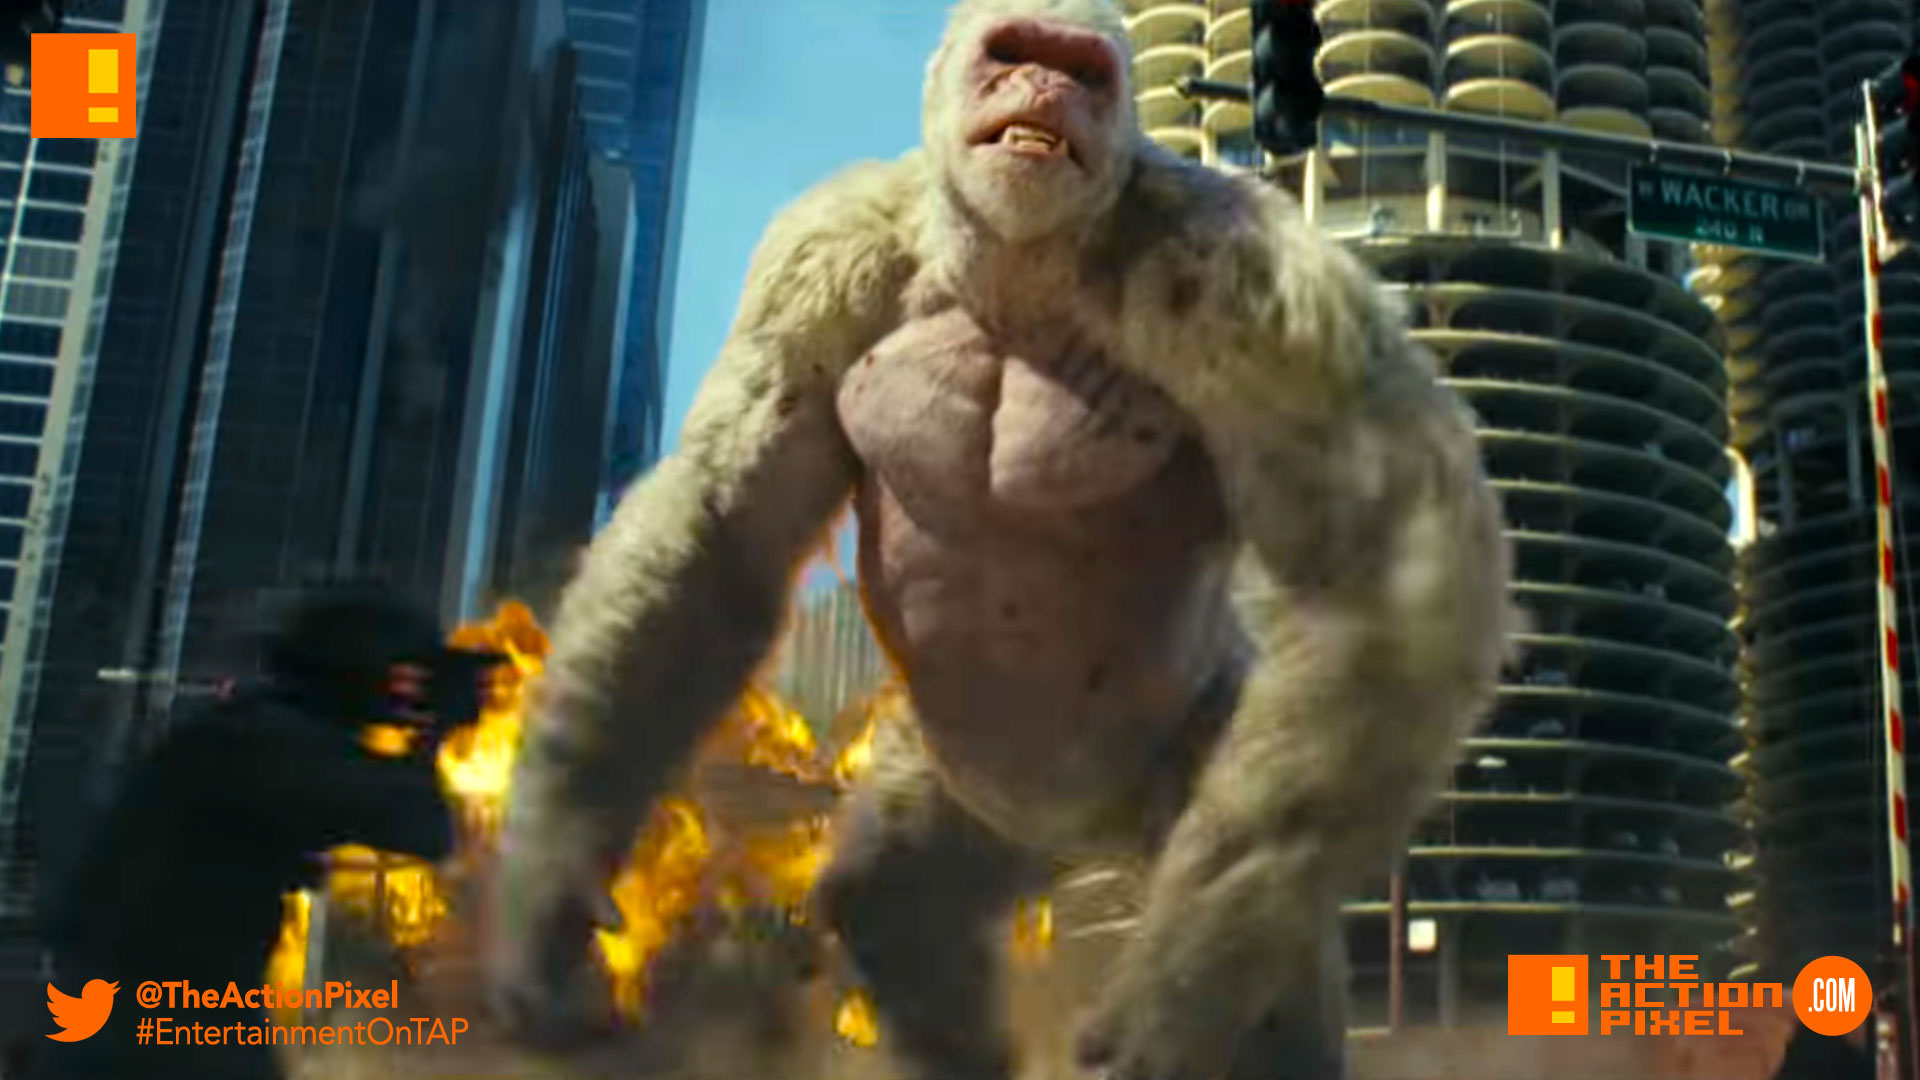 """rampage, poster, 80s,arcade games, video game, big meets bigger, the rock, dwayne johnson, dwayne """"the rock"""" johnson, poster, trailer, entertainment on tap, the action pixel, trailer,"""